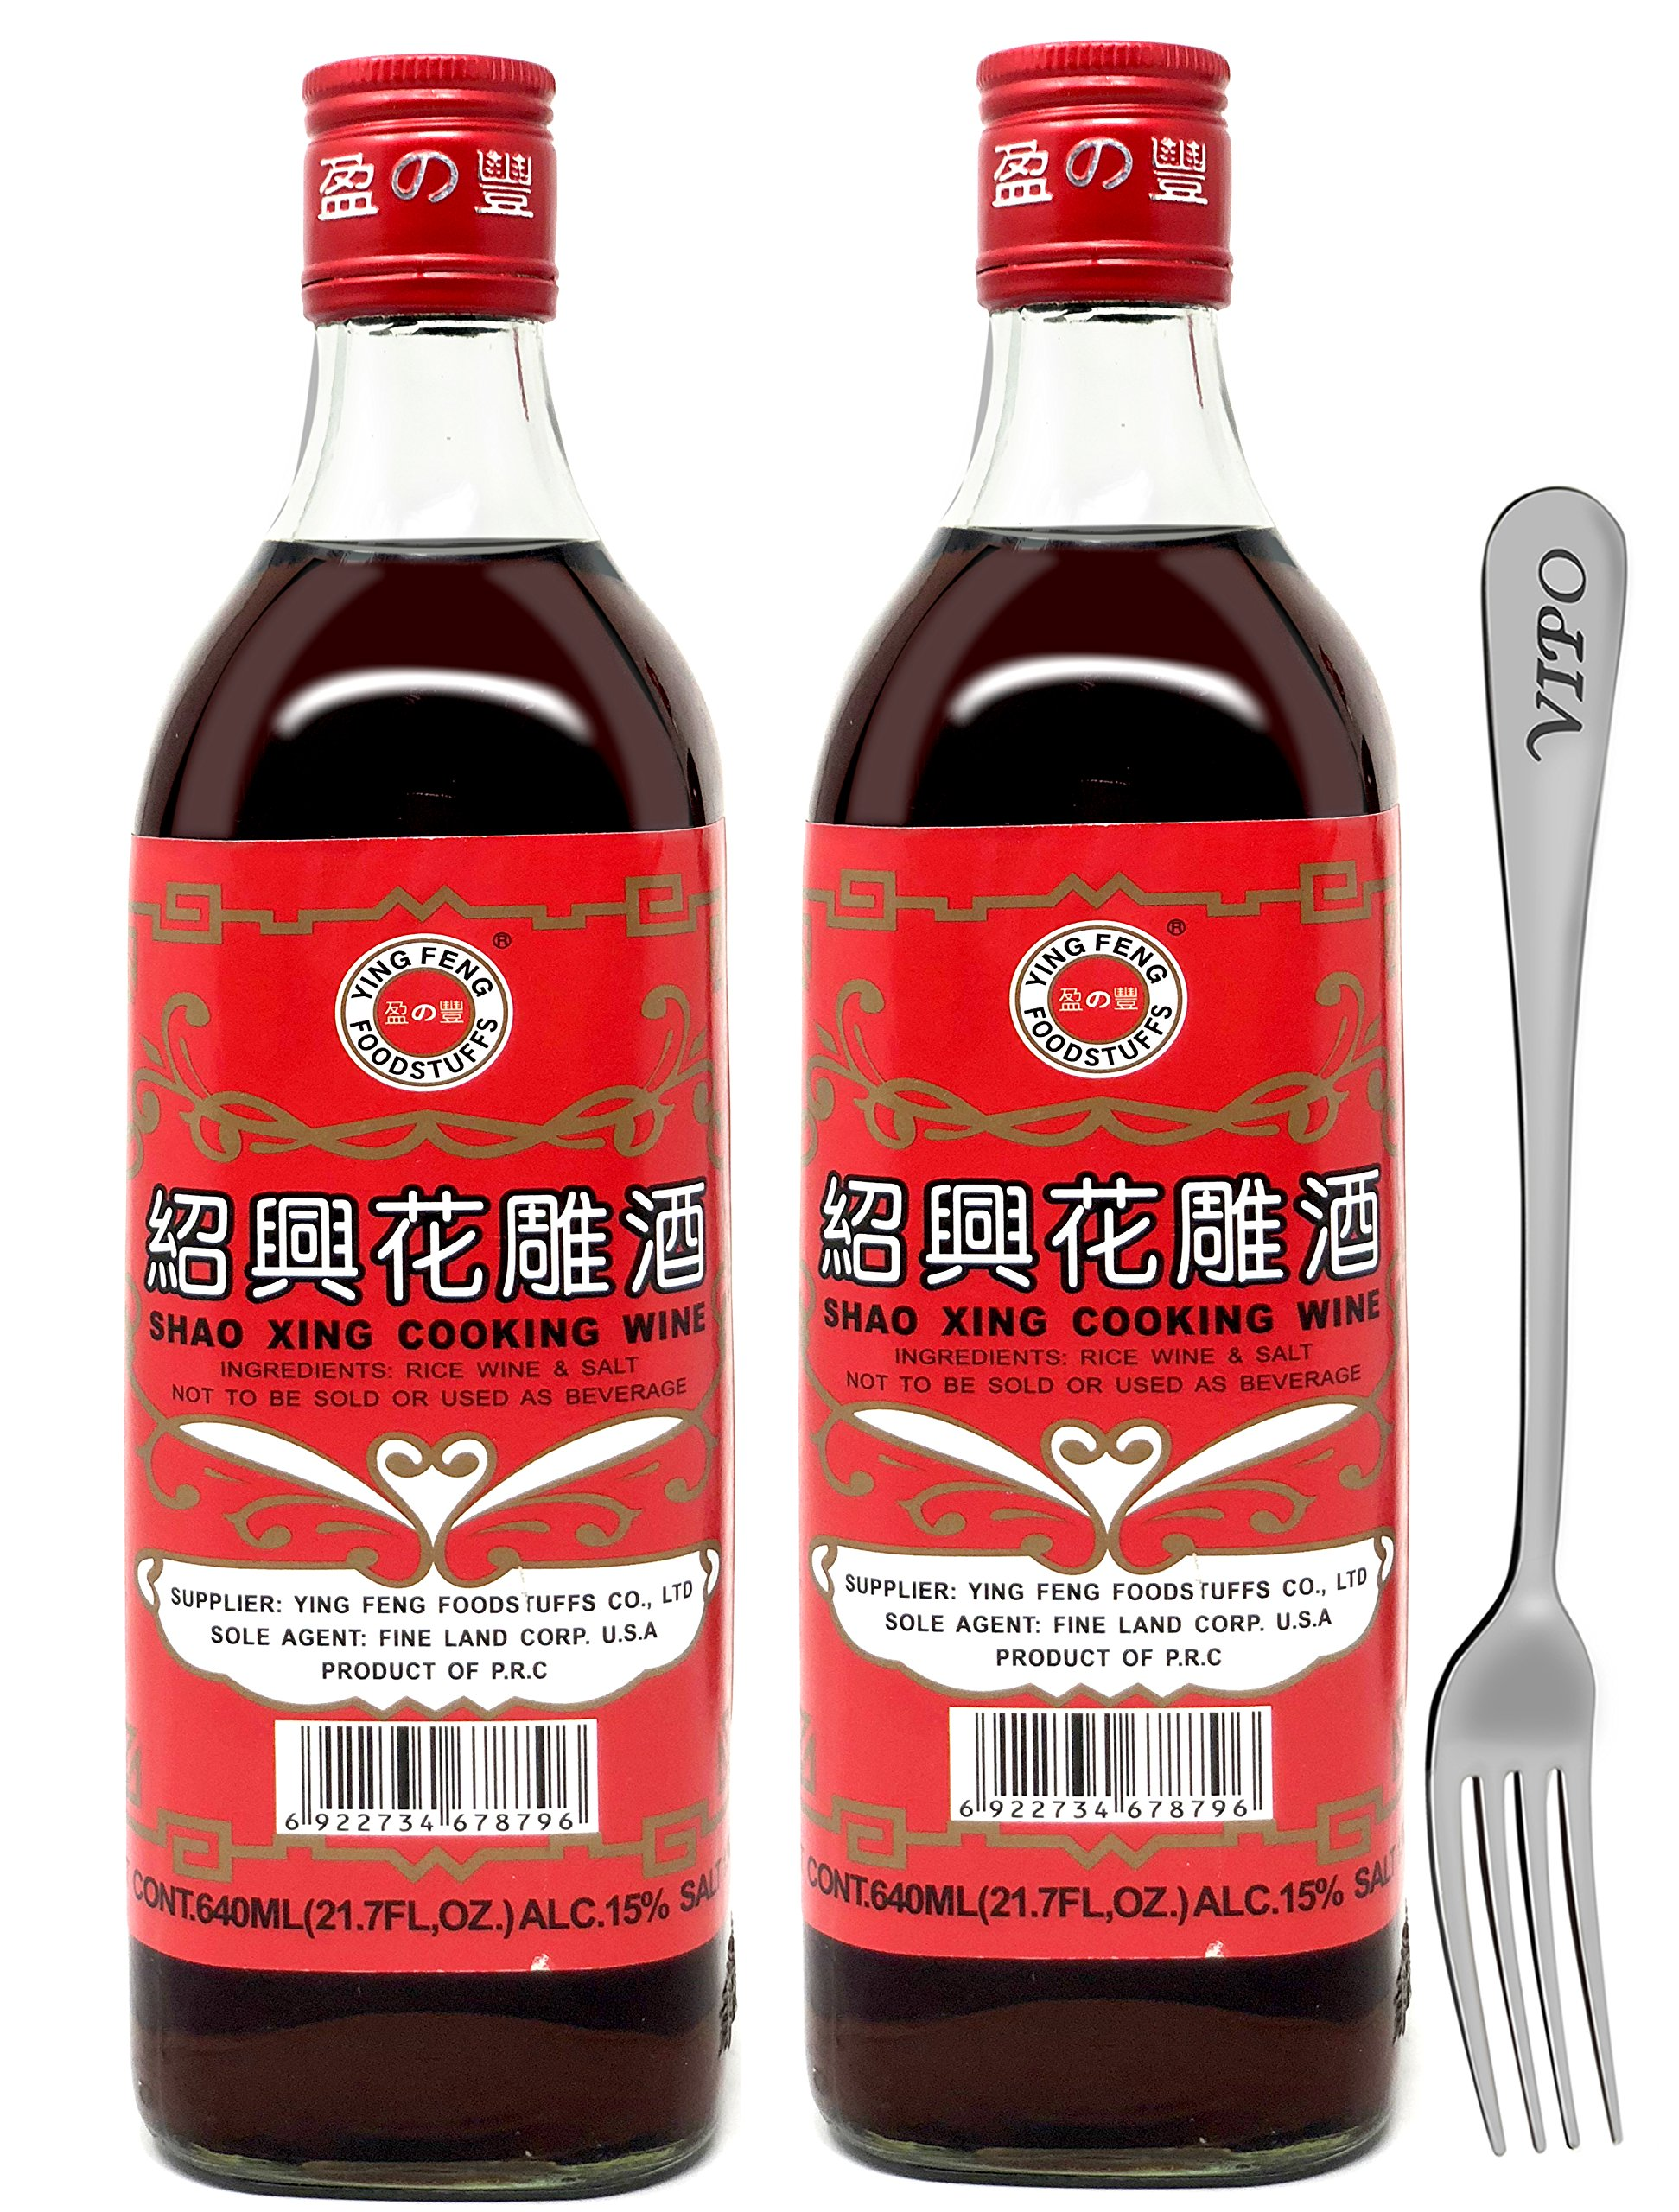 SHAOHSING RICE COOKING WINE 640ML(21.7 Fl, OZ) (Ying Feng Brand) Comes With Free Vipo Fork. (2 Bottles)